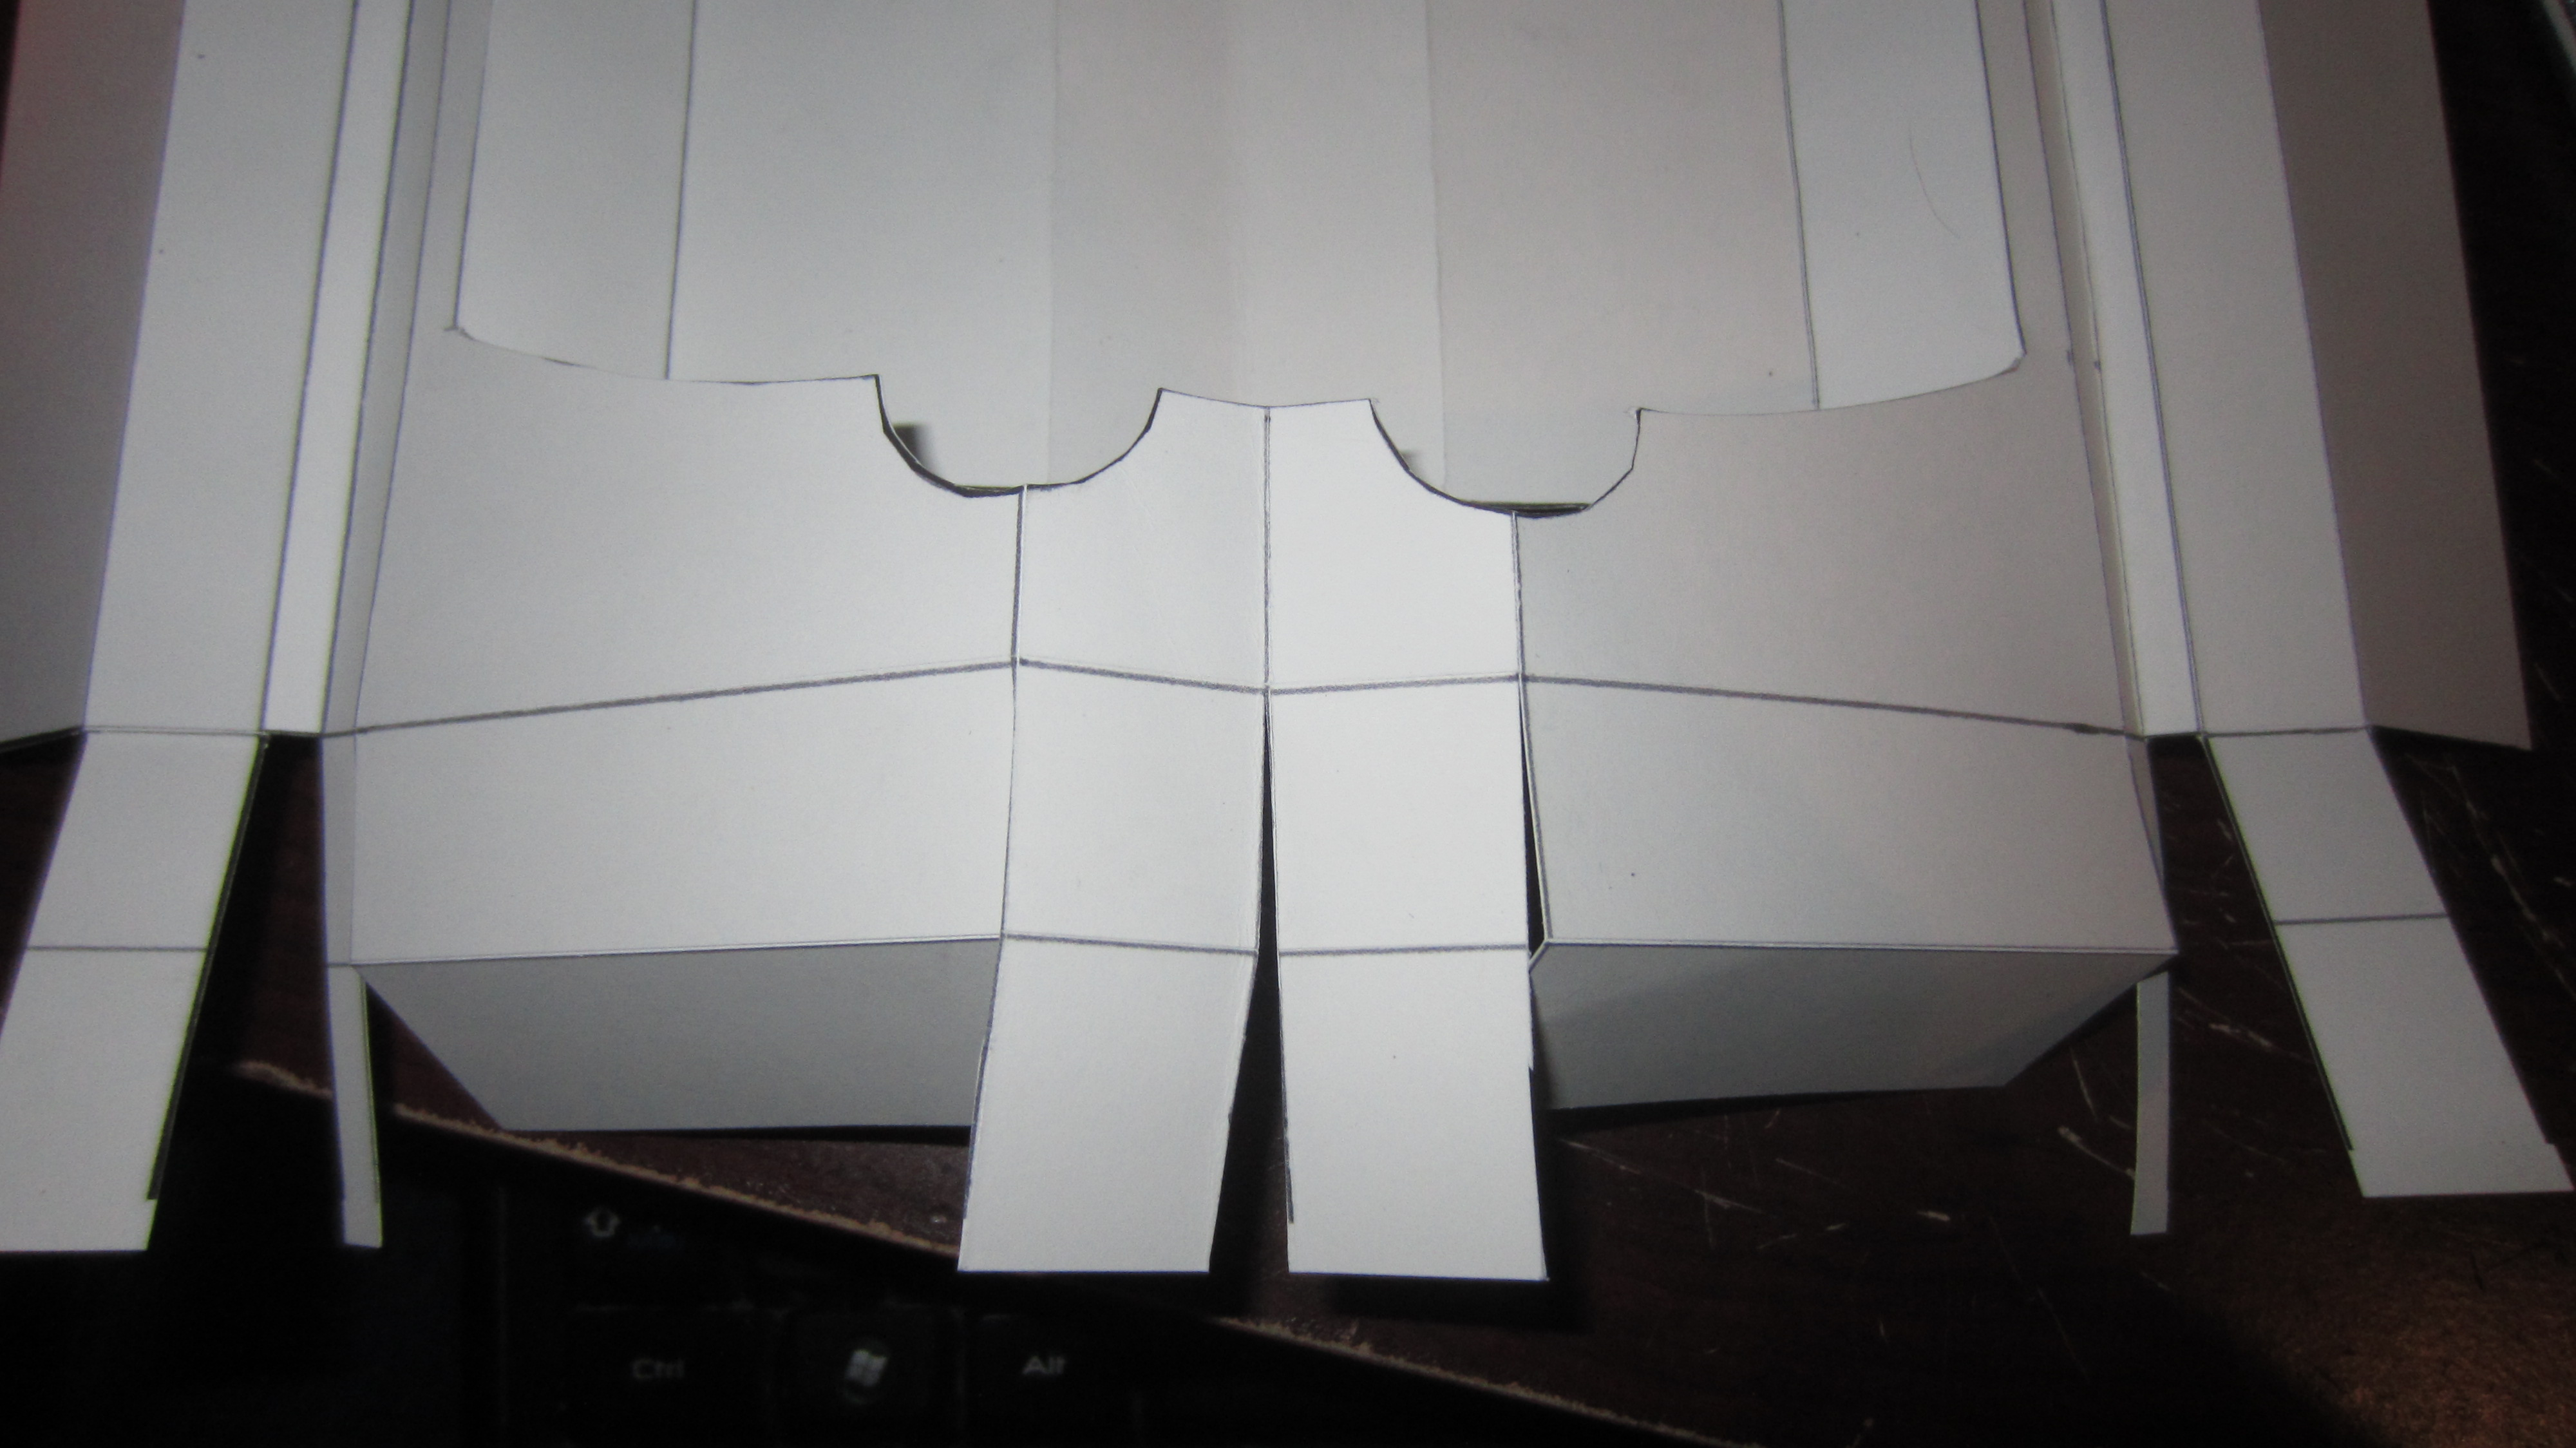 Picture of The Insert: Cutting the Large Flaps